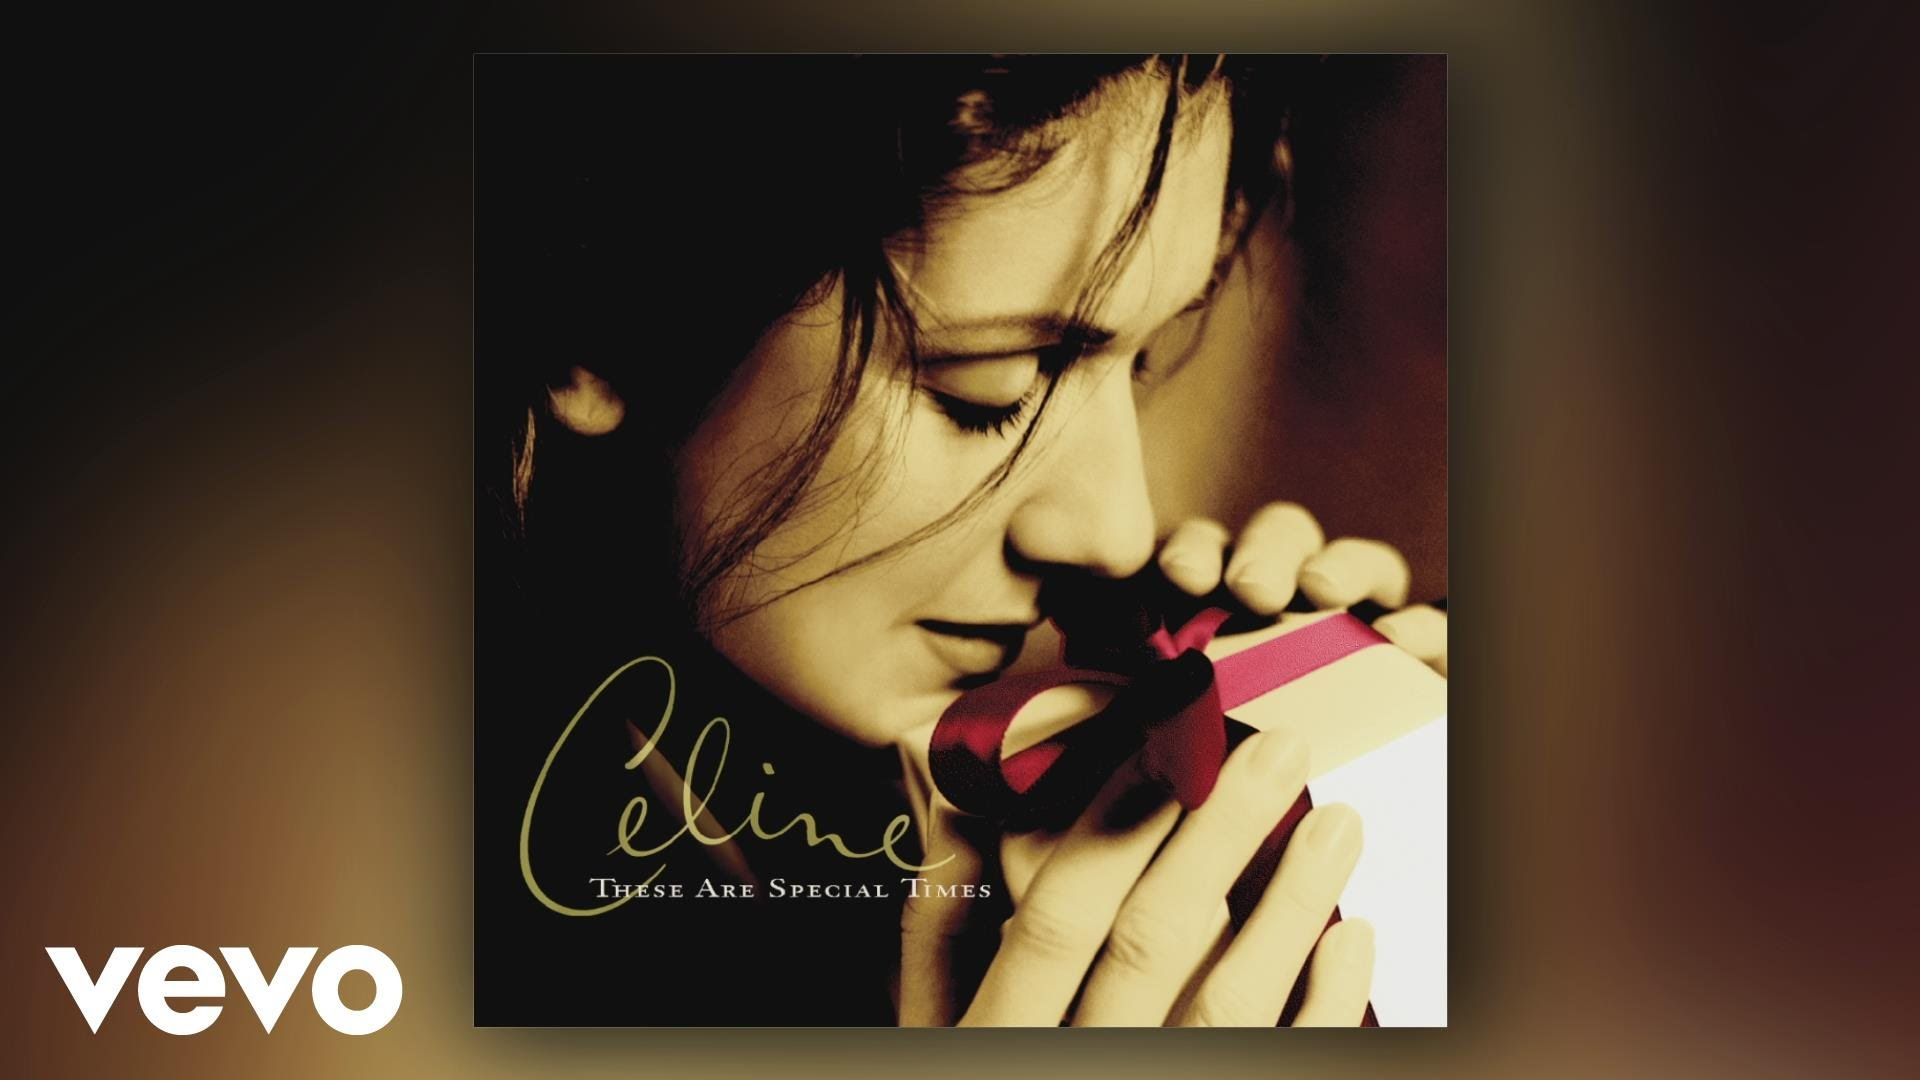 Celine Dion The Christmas Song Chestnuts Roasting On An Open Fire Celine Dion Funeral Songs Celine